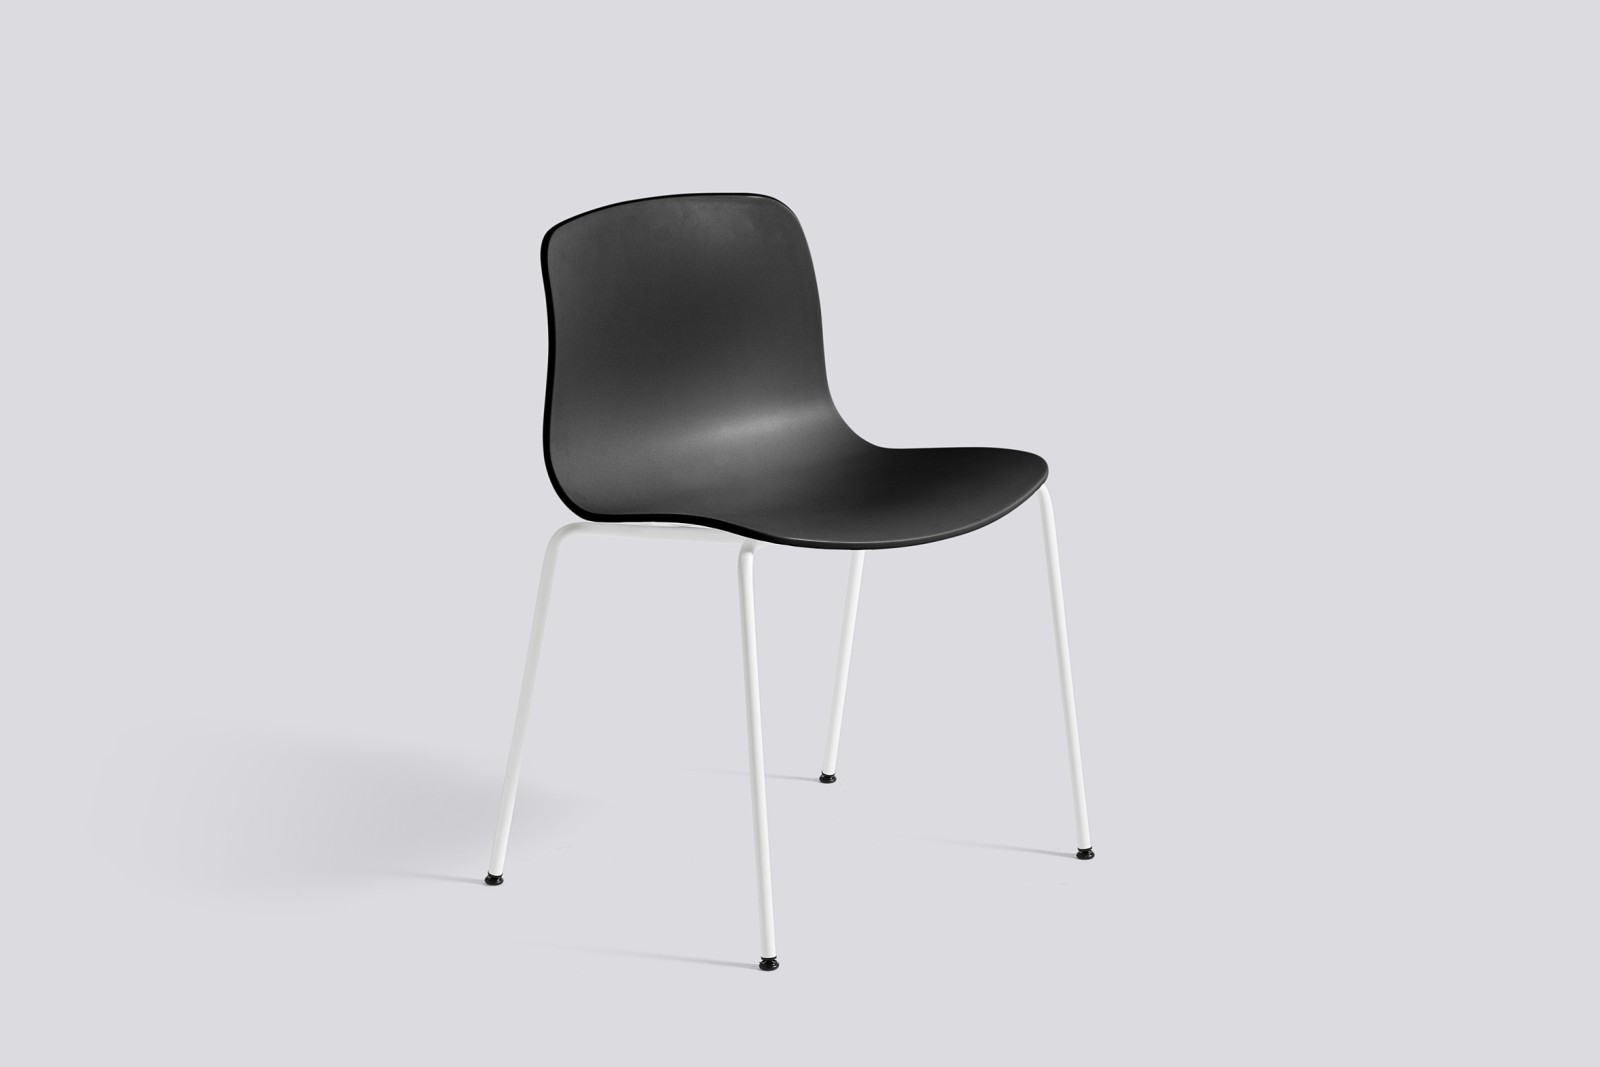 About A Chair AAC16 Black, White Powder Coated Steel